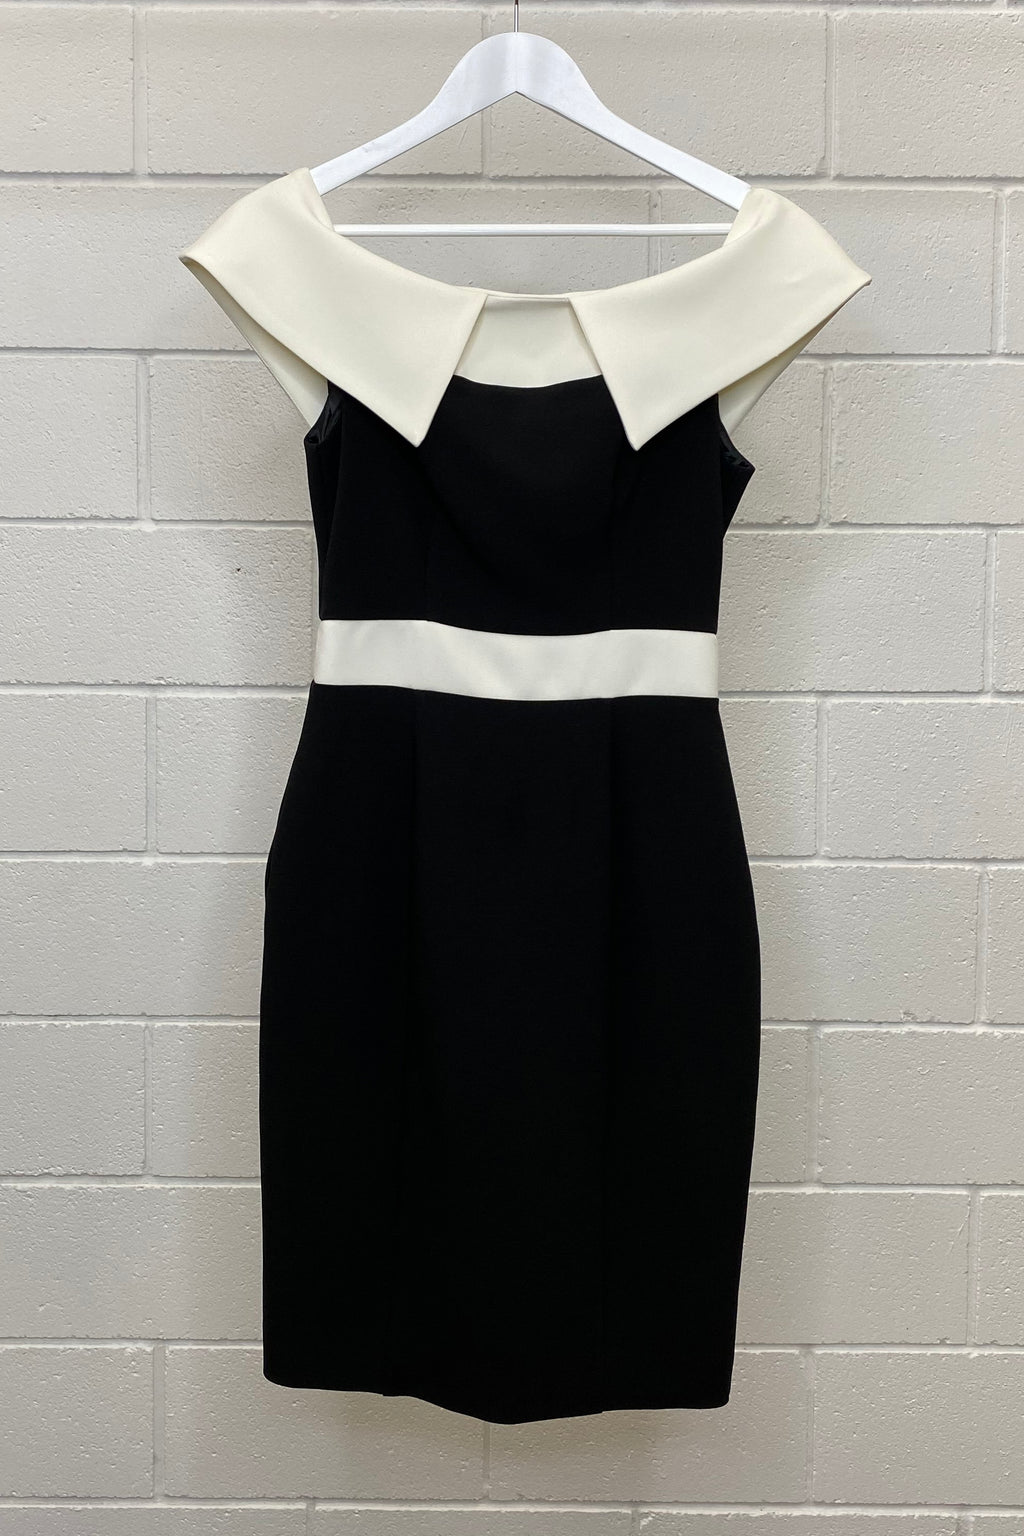 CUE BLACK AND WHITE COLLARED DRESS SIZE 8 | Dress (Preloved)